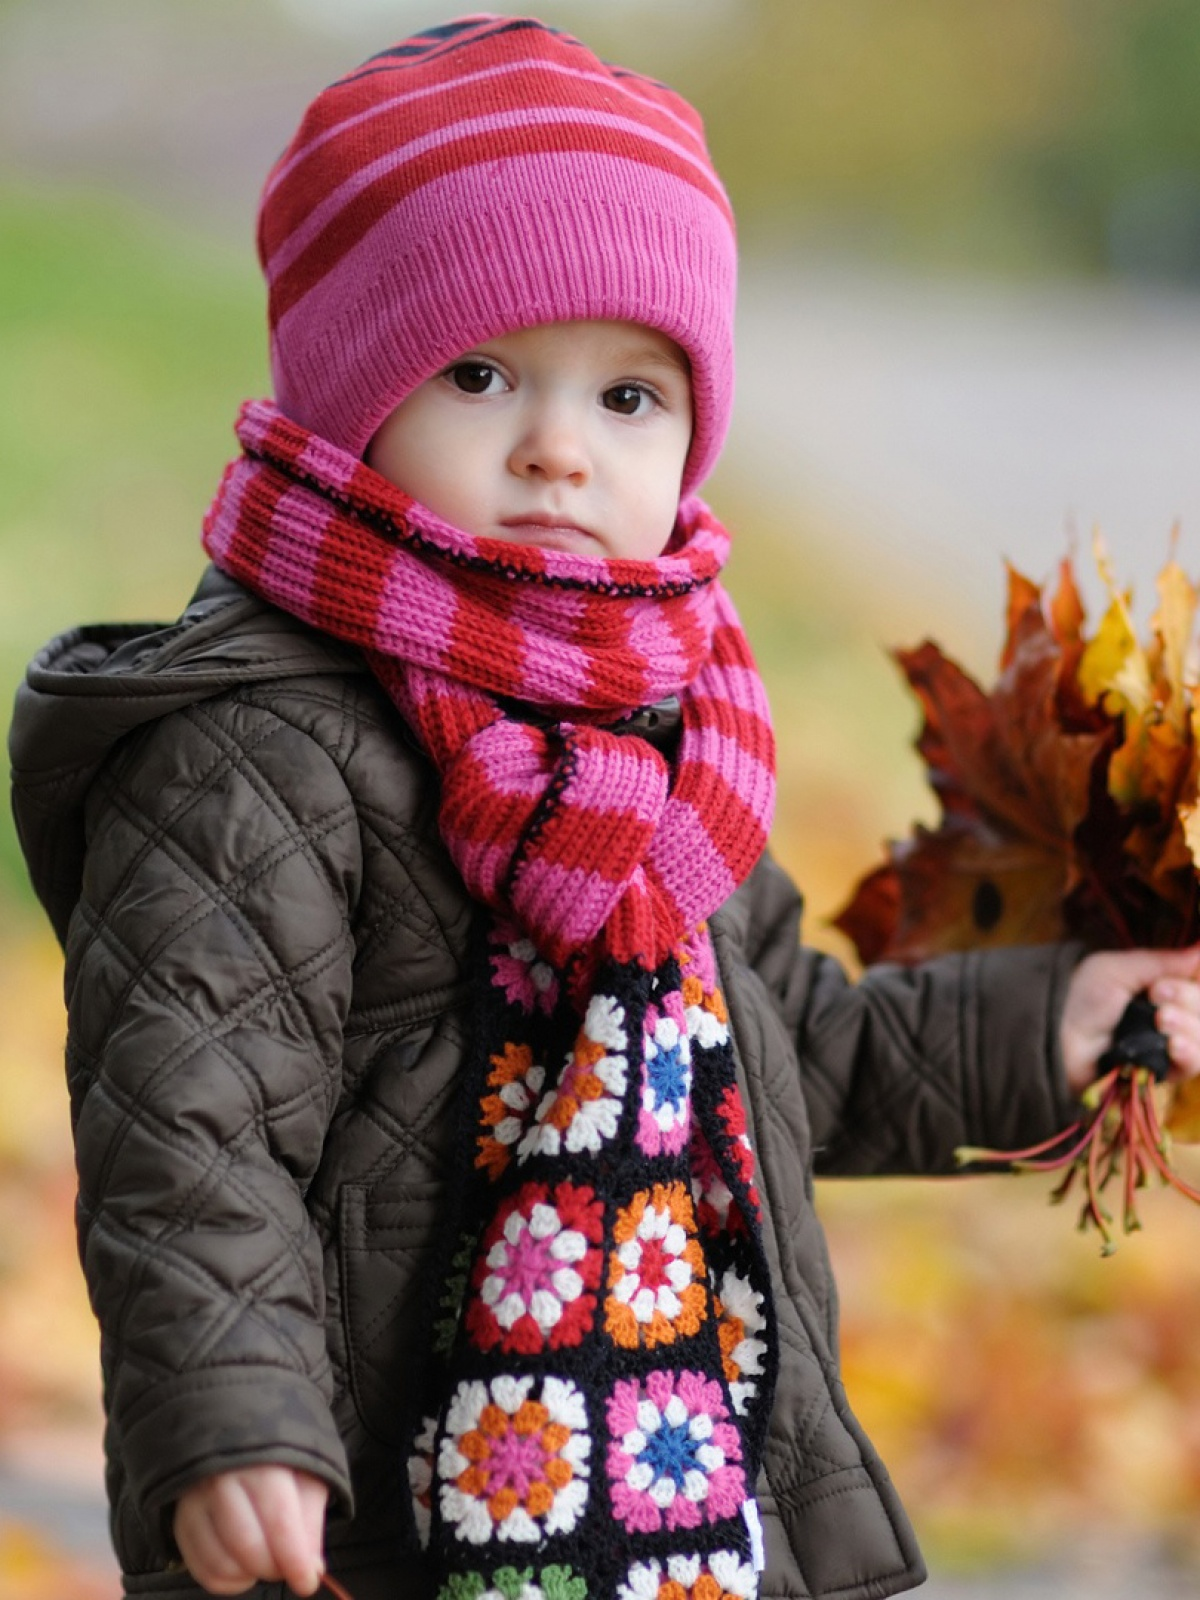 cute baby in autumn mobile wallpaper - mobiles wall